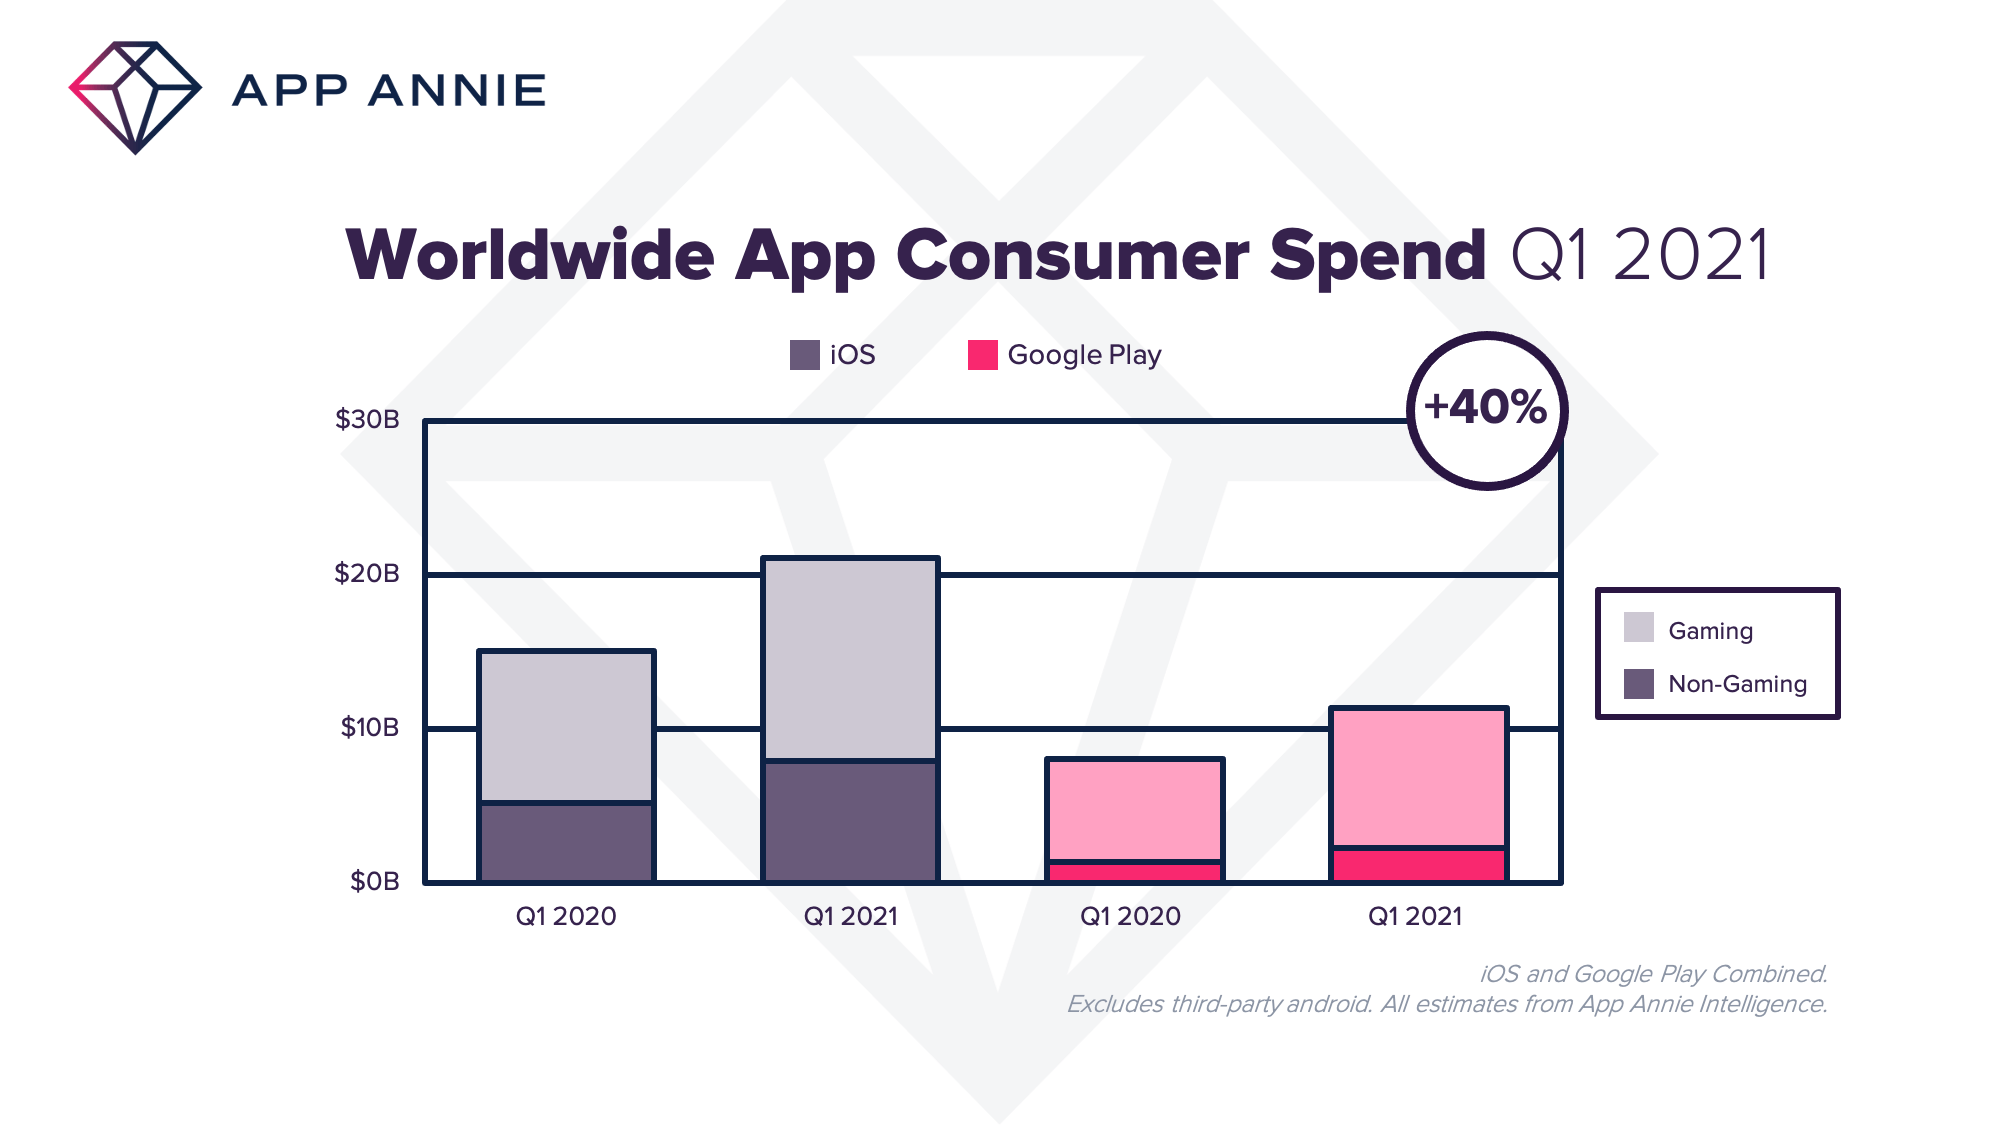 In-app purchases rose 40% during Q1 2021